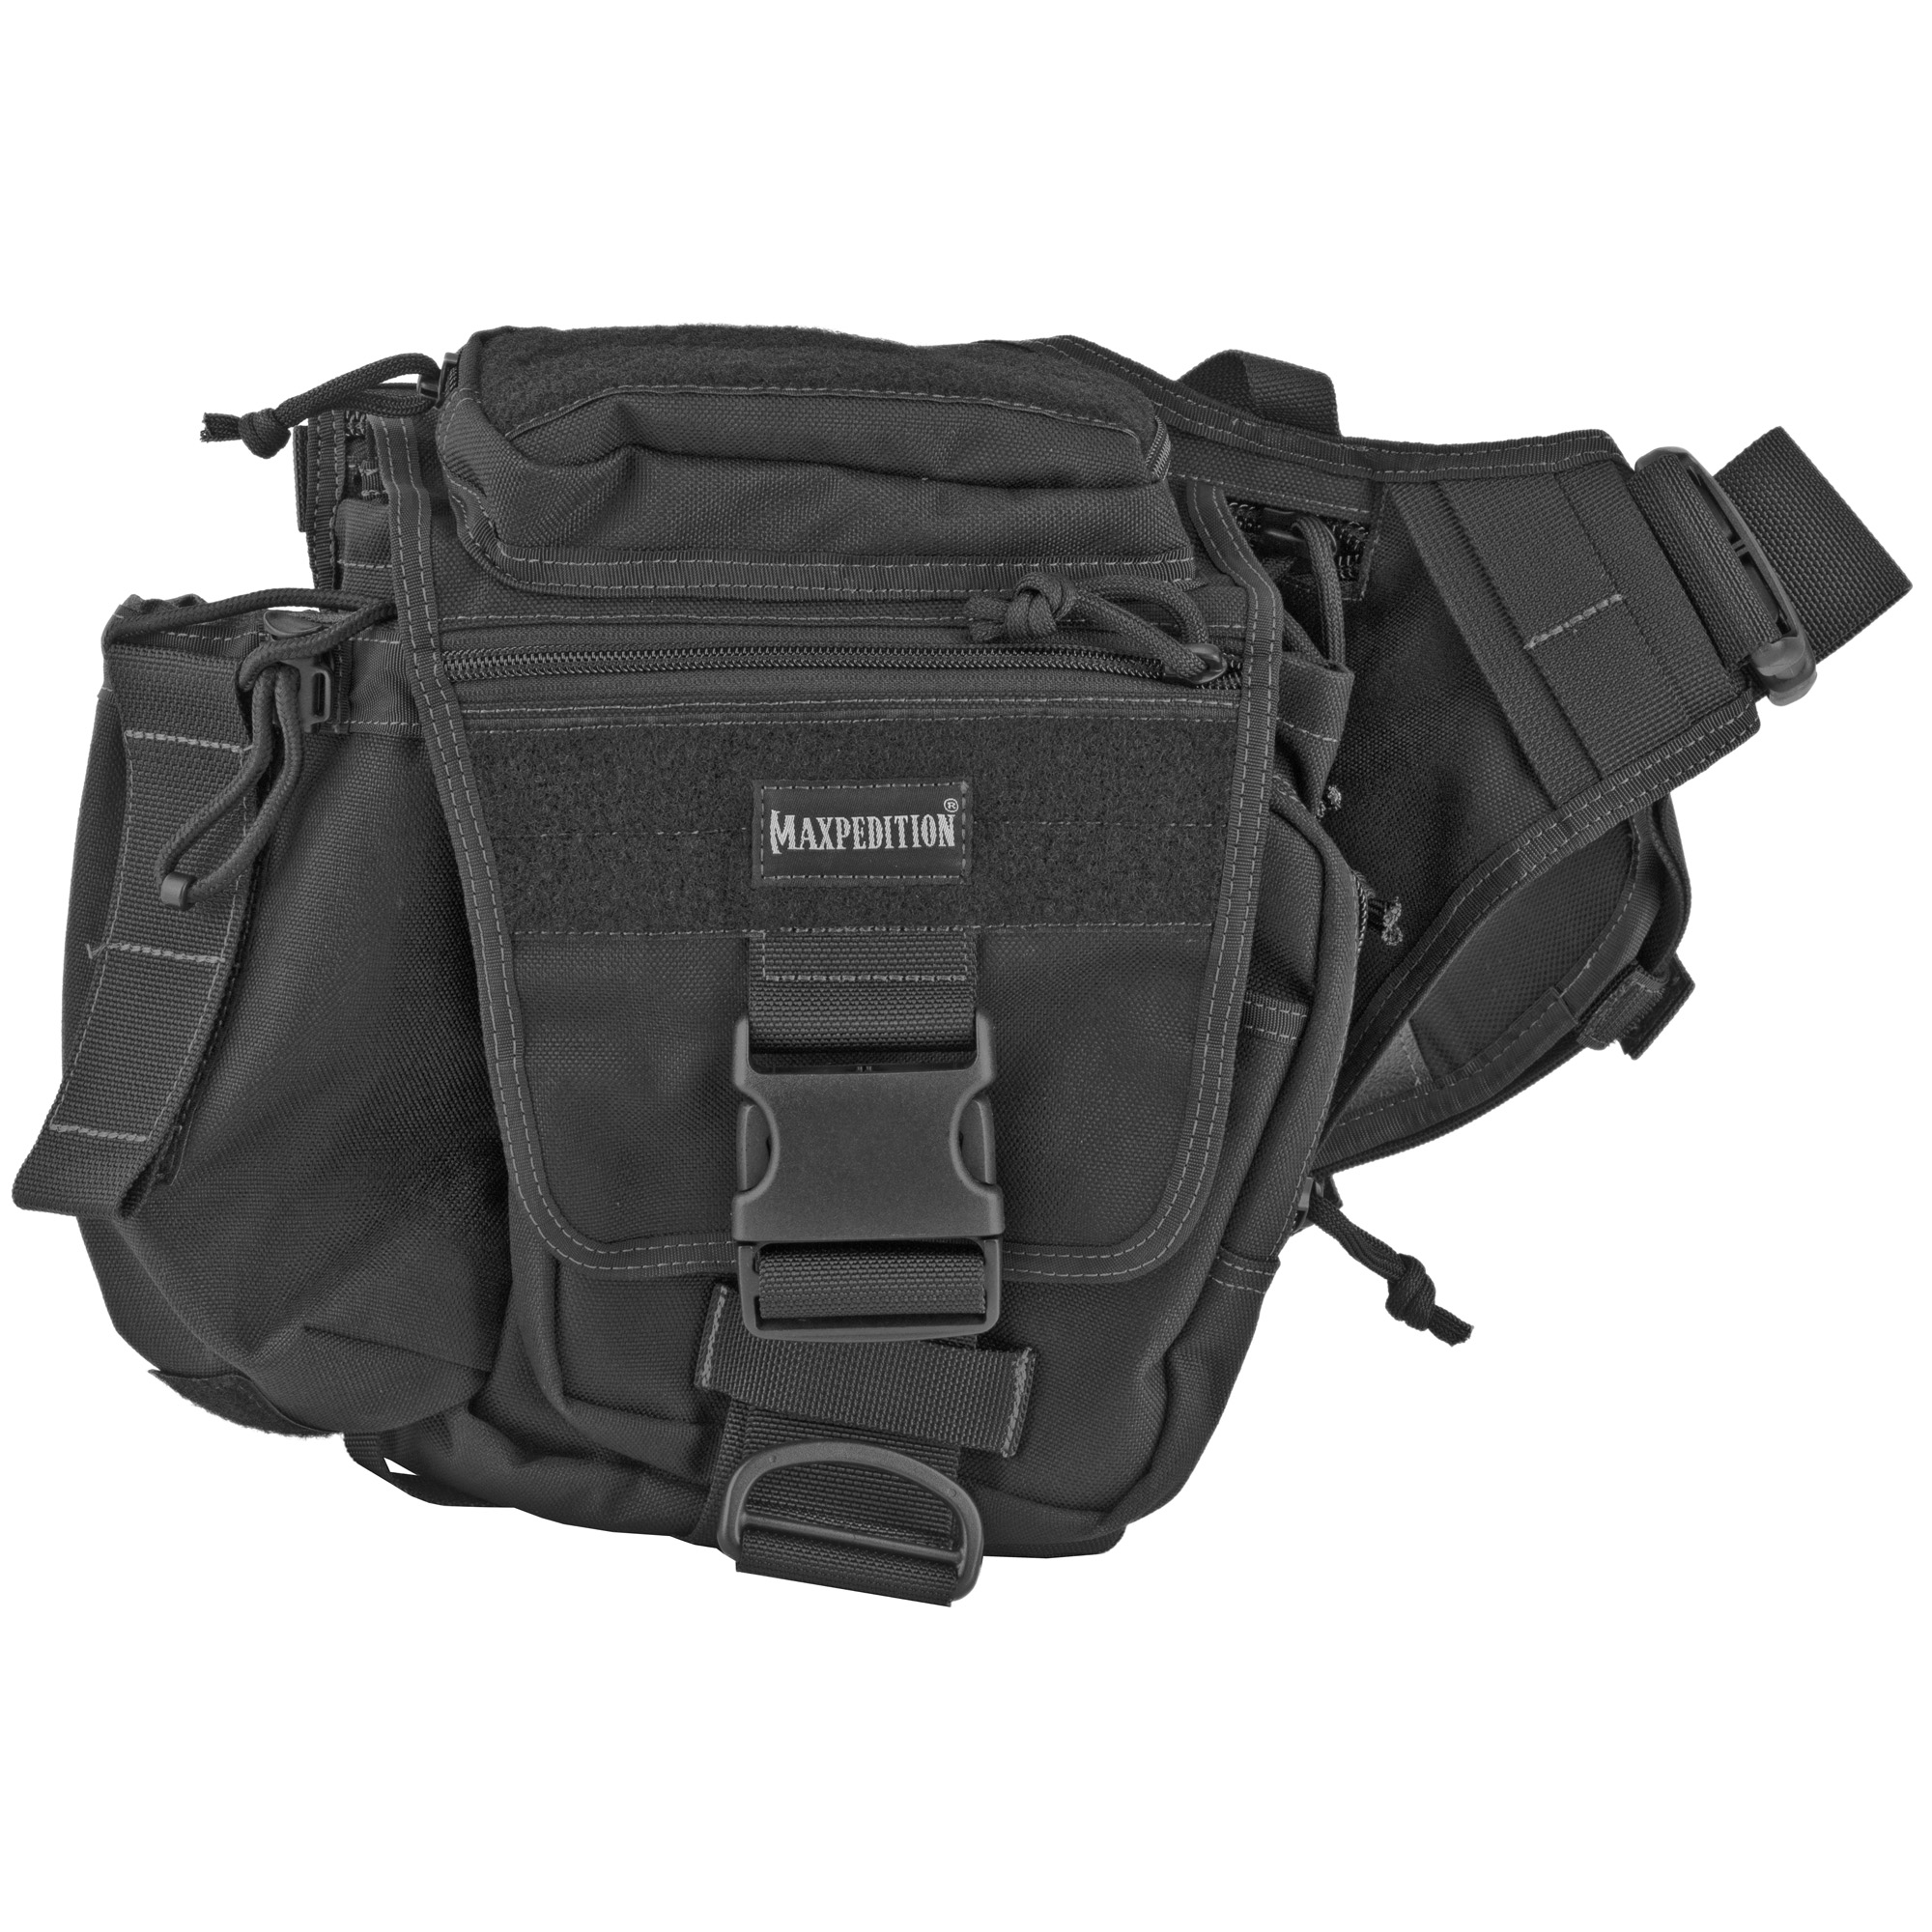 """Maxpedition is committed to improvement"""" optimizing ergonomics"""" creating user-friendly designs"""" fine-tuning construction methods"""" refining aesthetics"""" using the highest quality materials and world-class craftsmanship. The Maxpedition name remains a steadfast beacon that is synonymous with the highest level of quality and durability."""